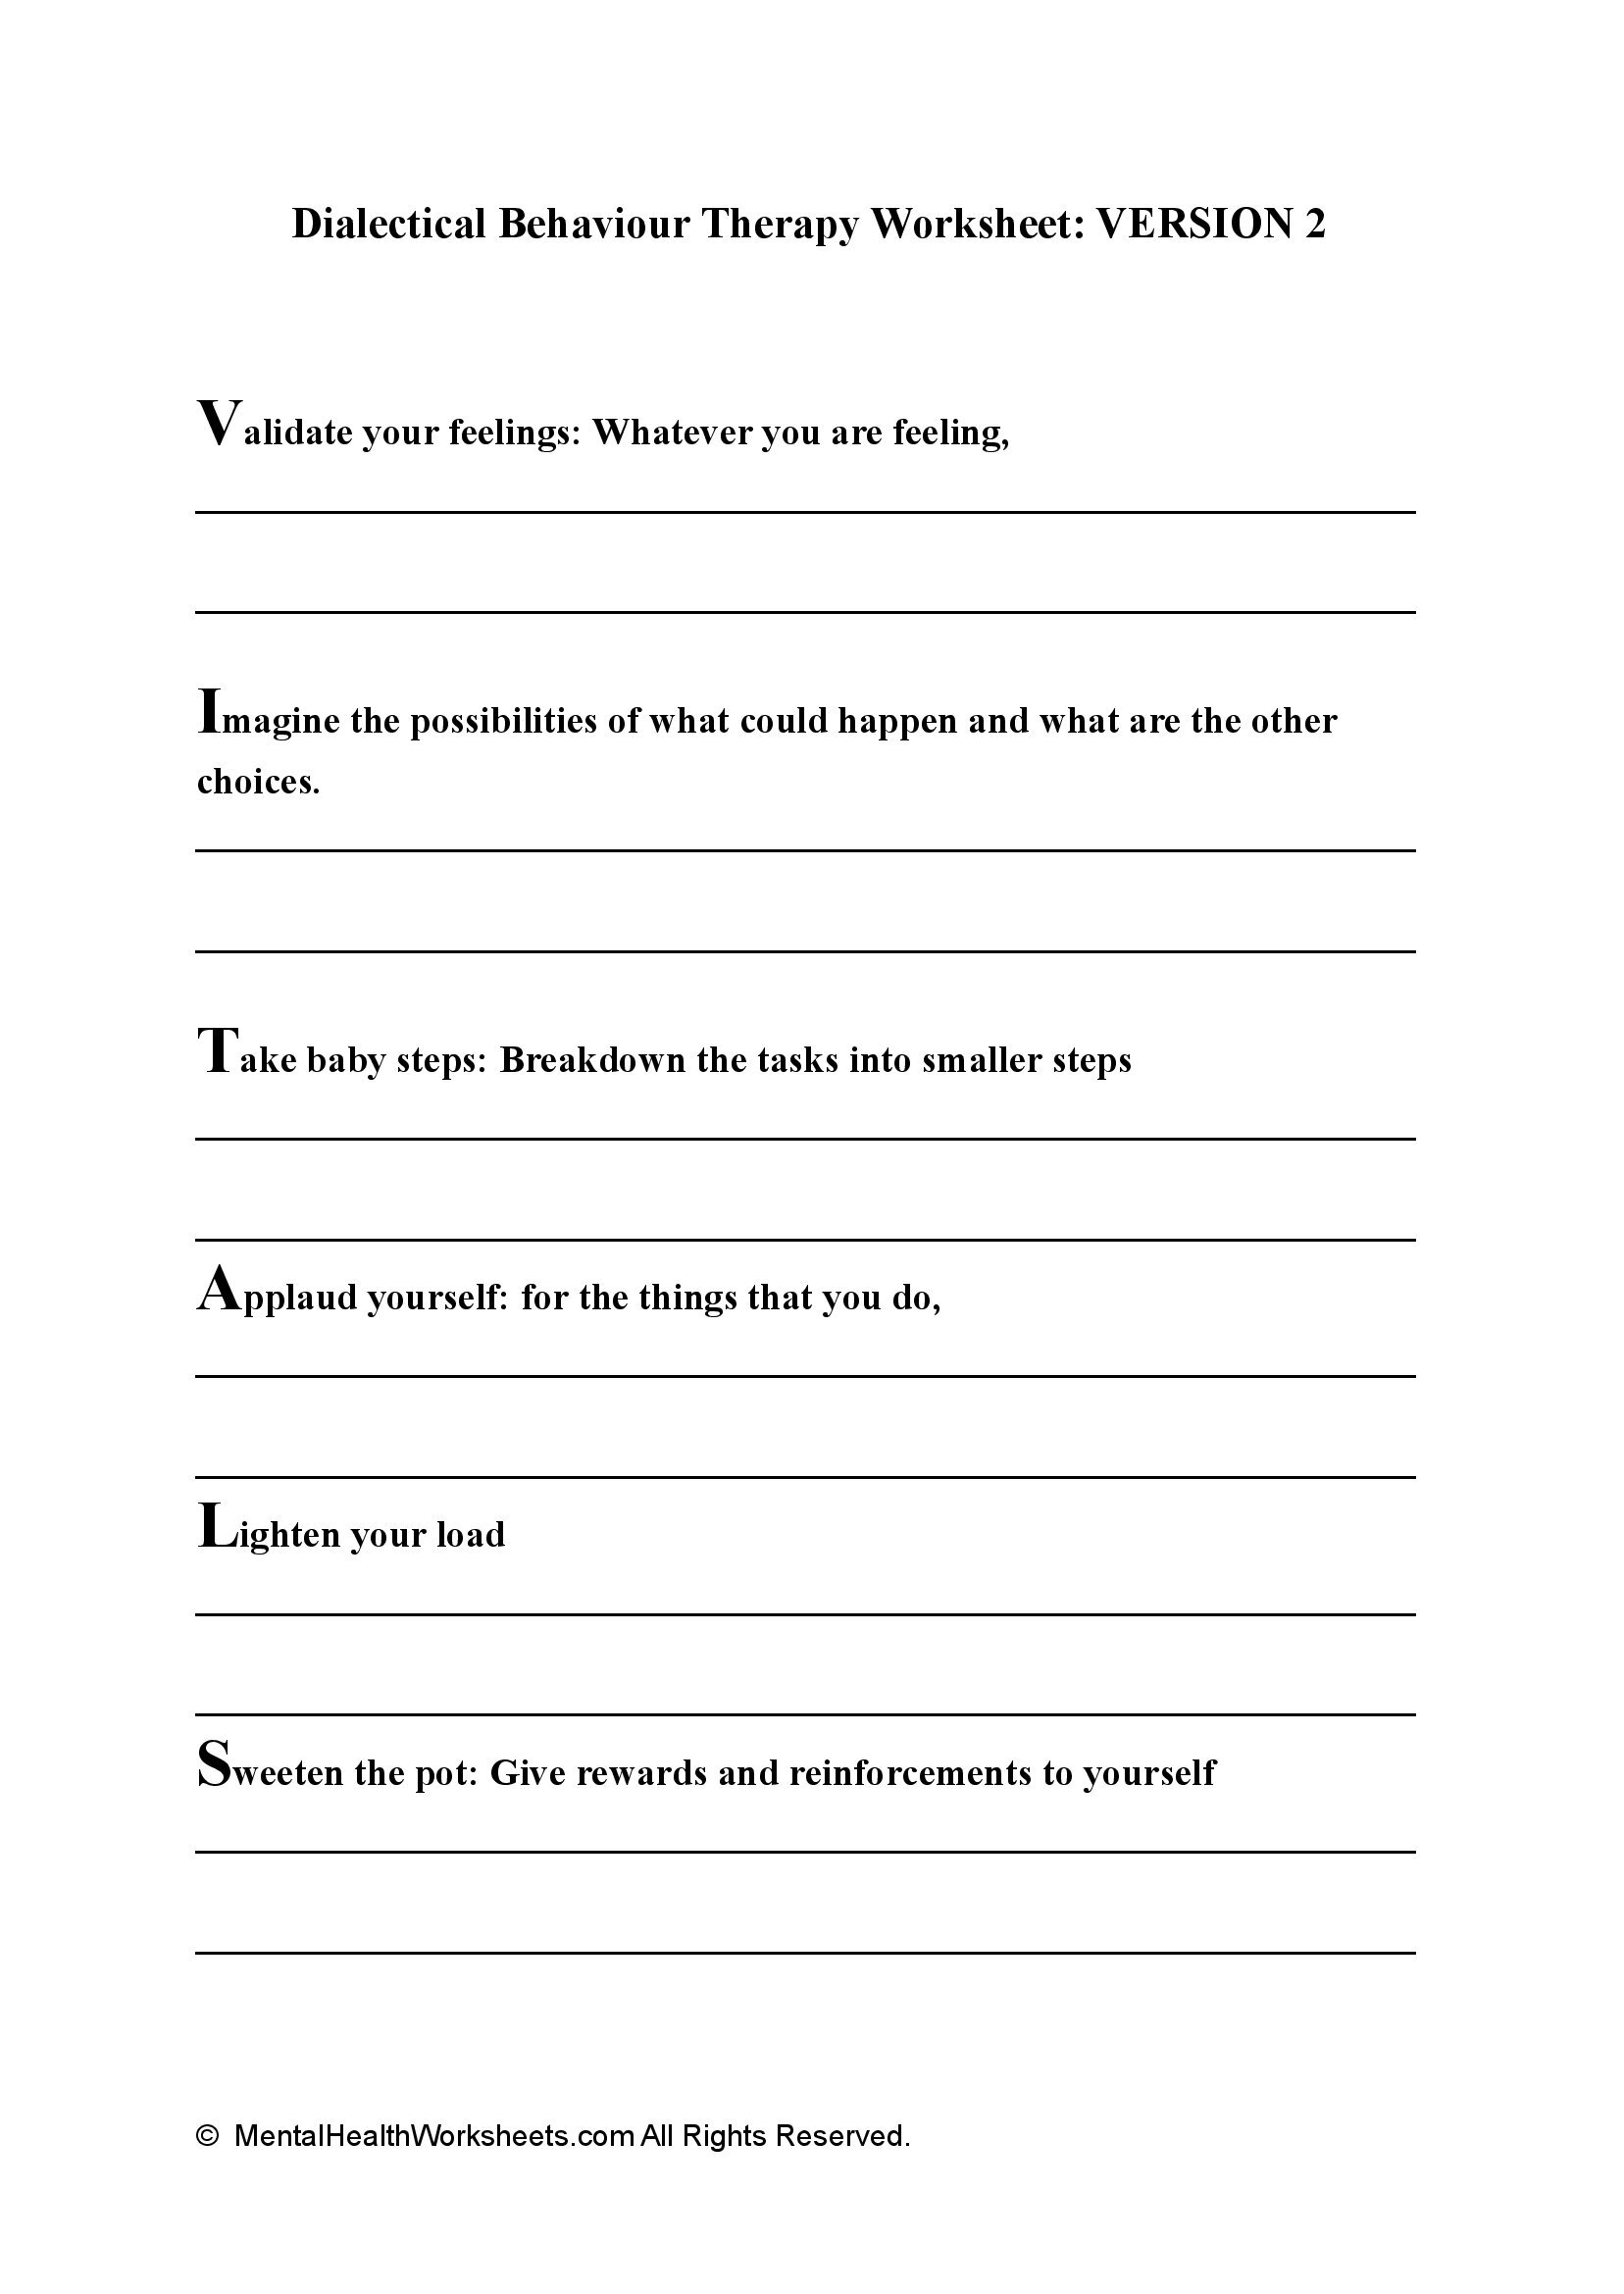 Dialectical Behaviour Therapy Worksheet: VERSION 2